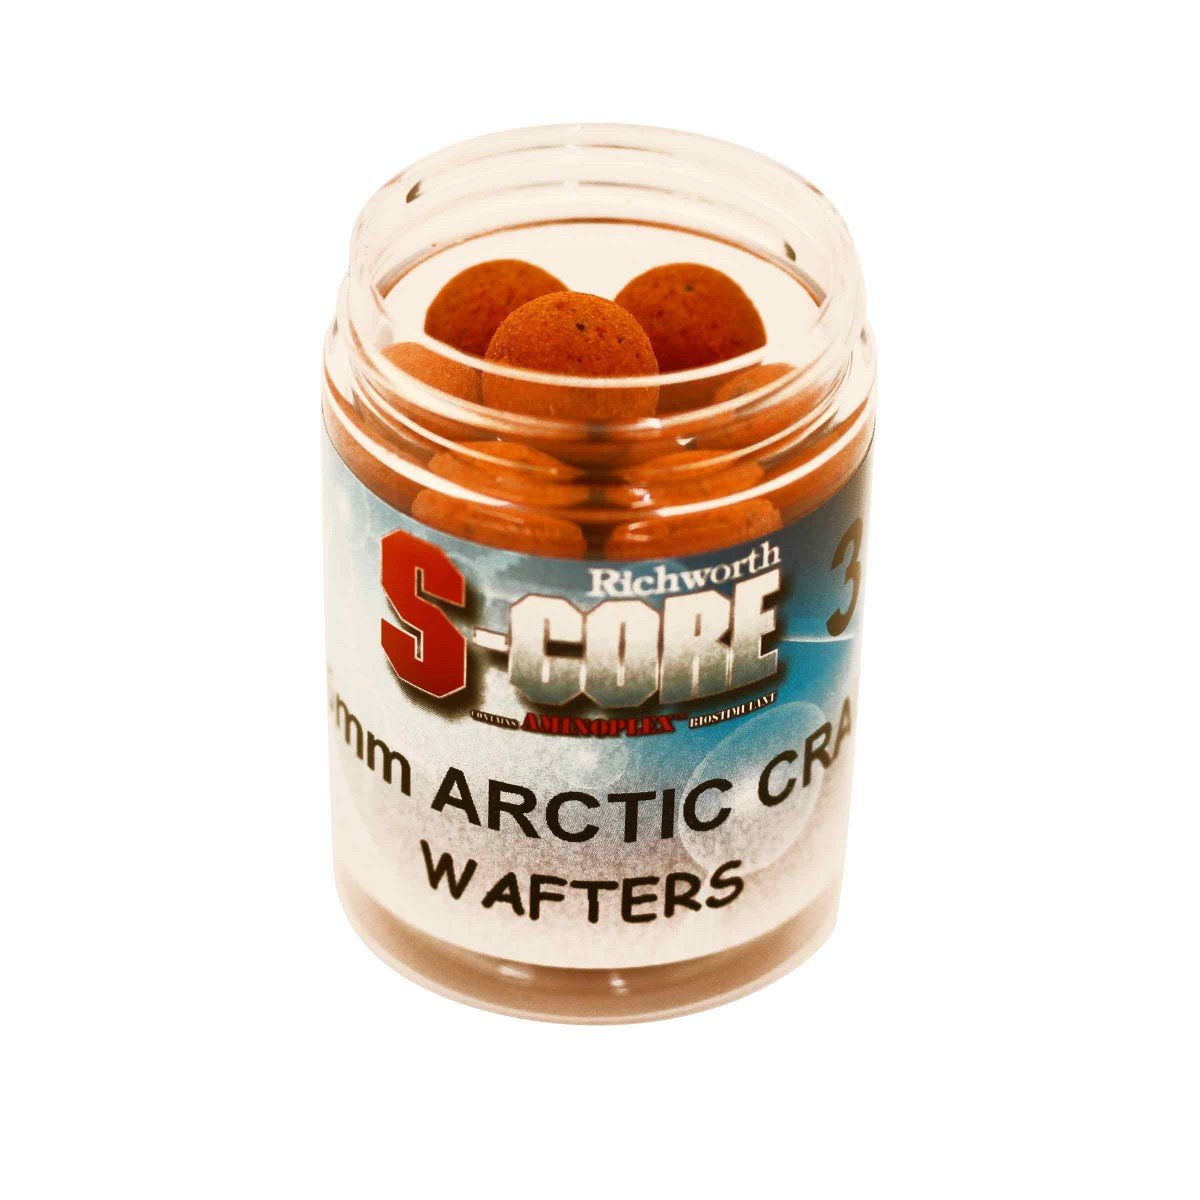 S Core3 Arctic Crab Wafters